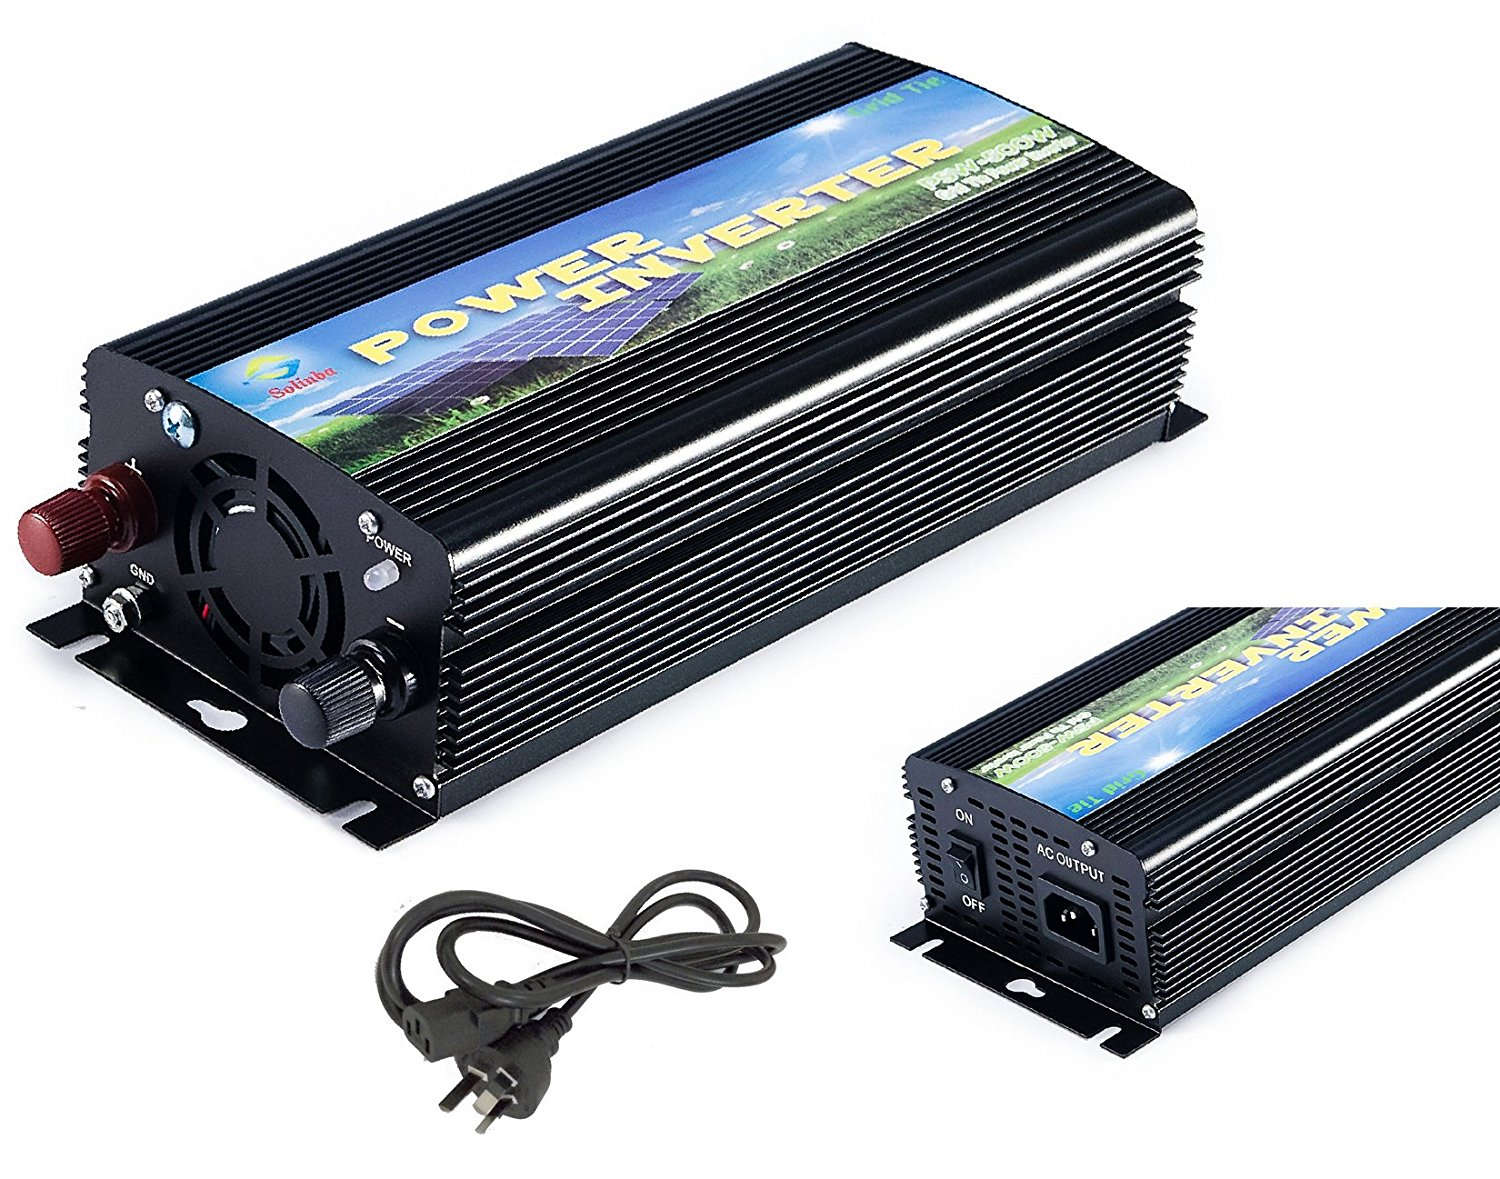 Solinba 500w Grid Tie Power Inverter for Solar Panel, MPPT, Converter, Black, AU, DC11v-28v to AC 220v